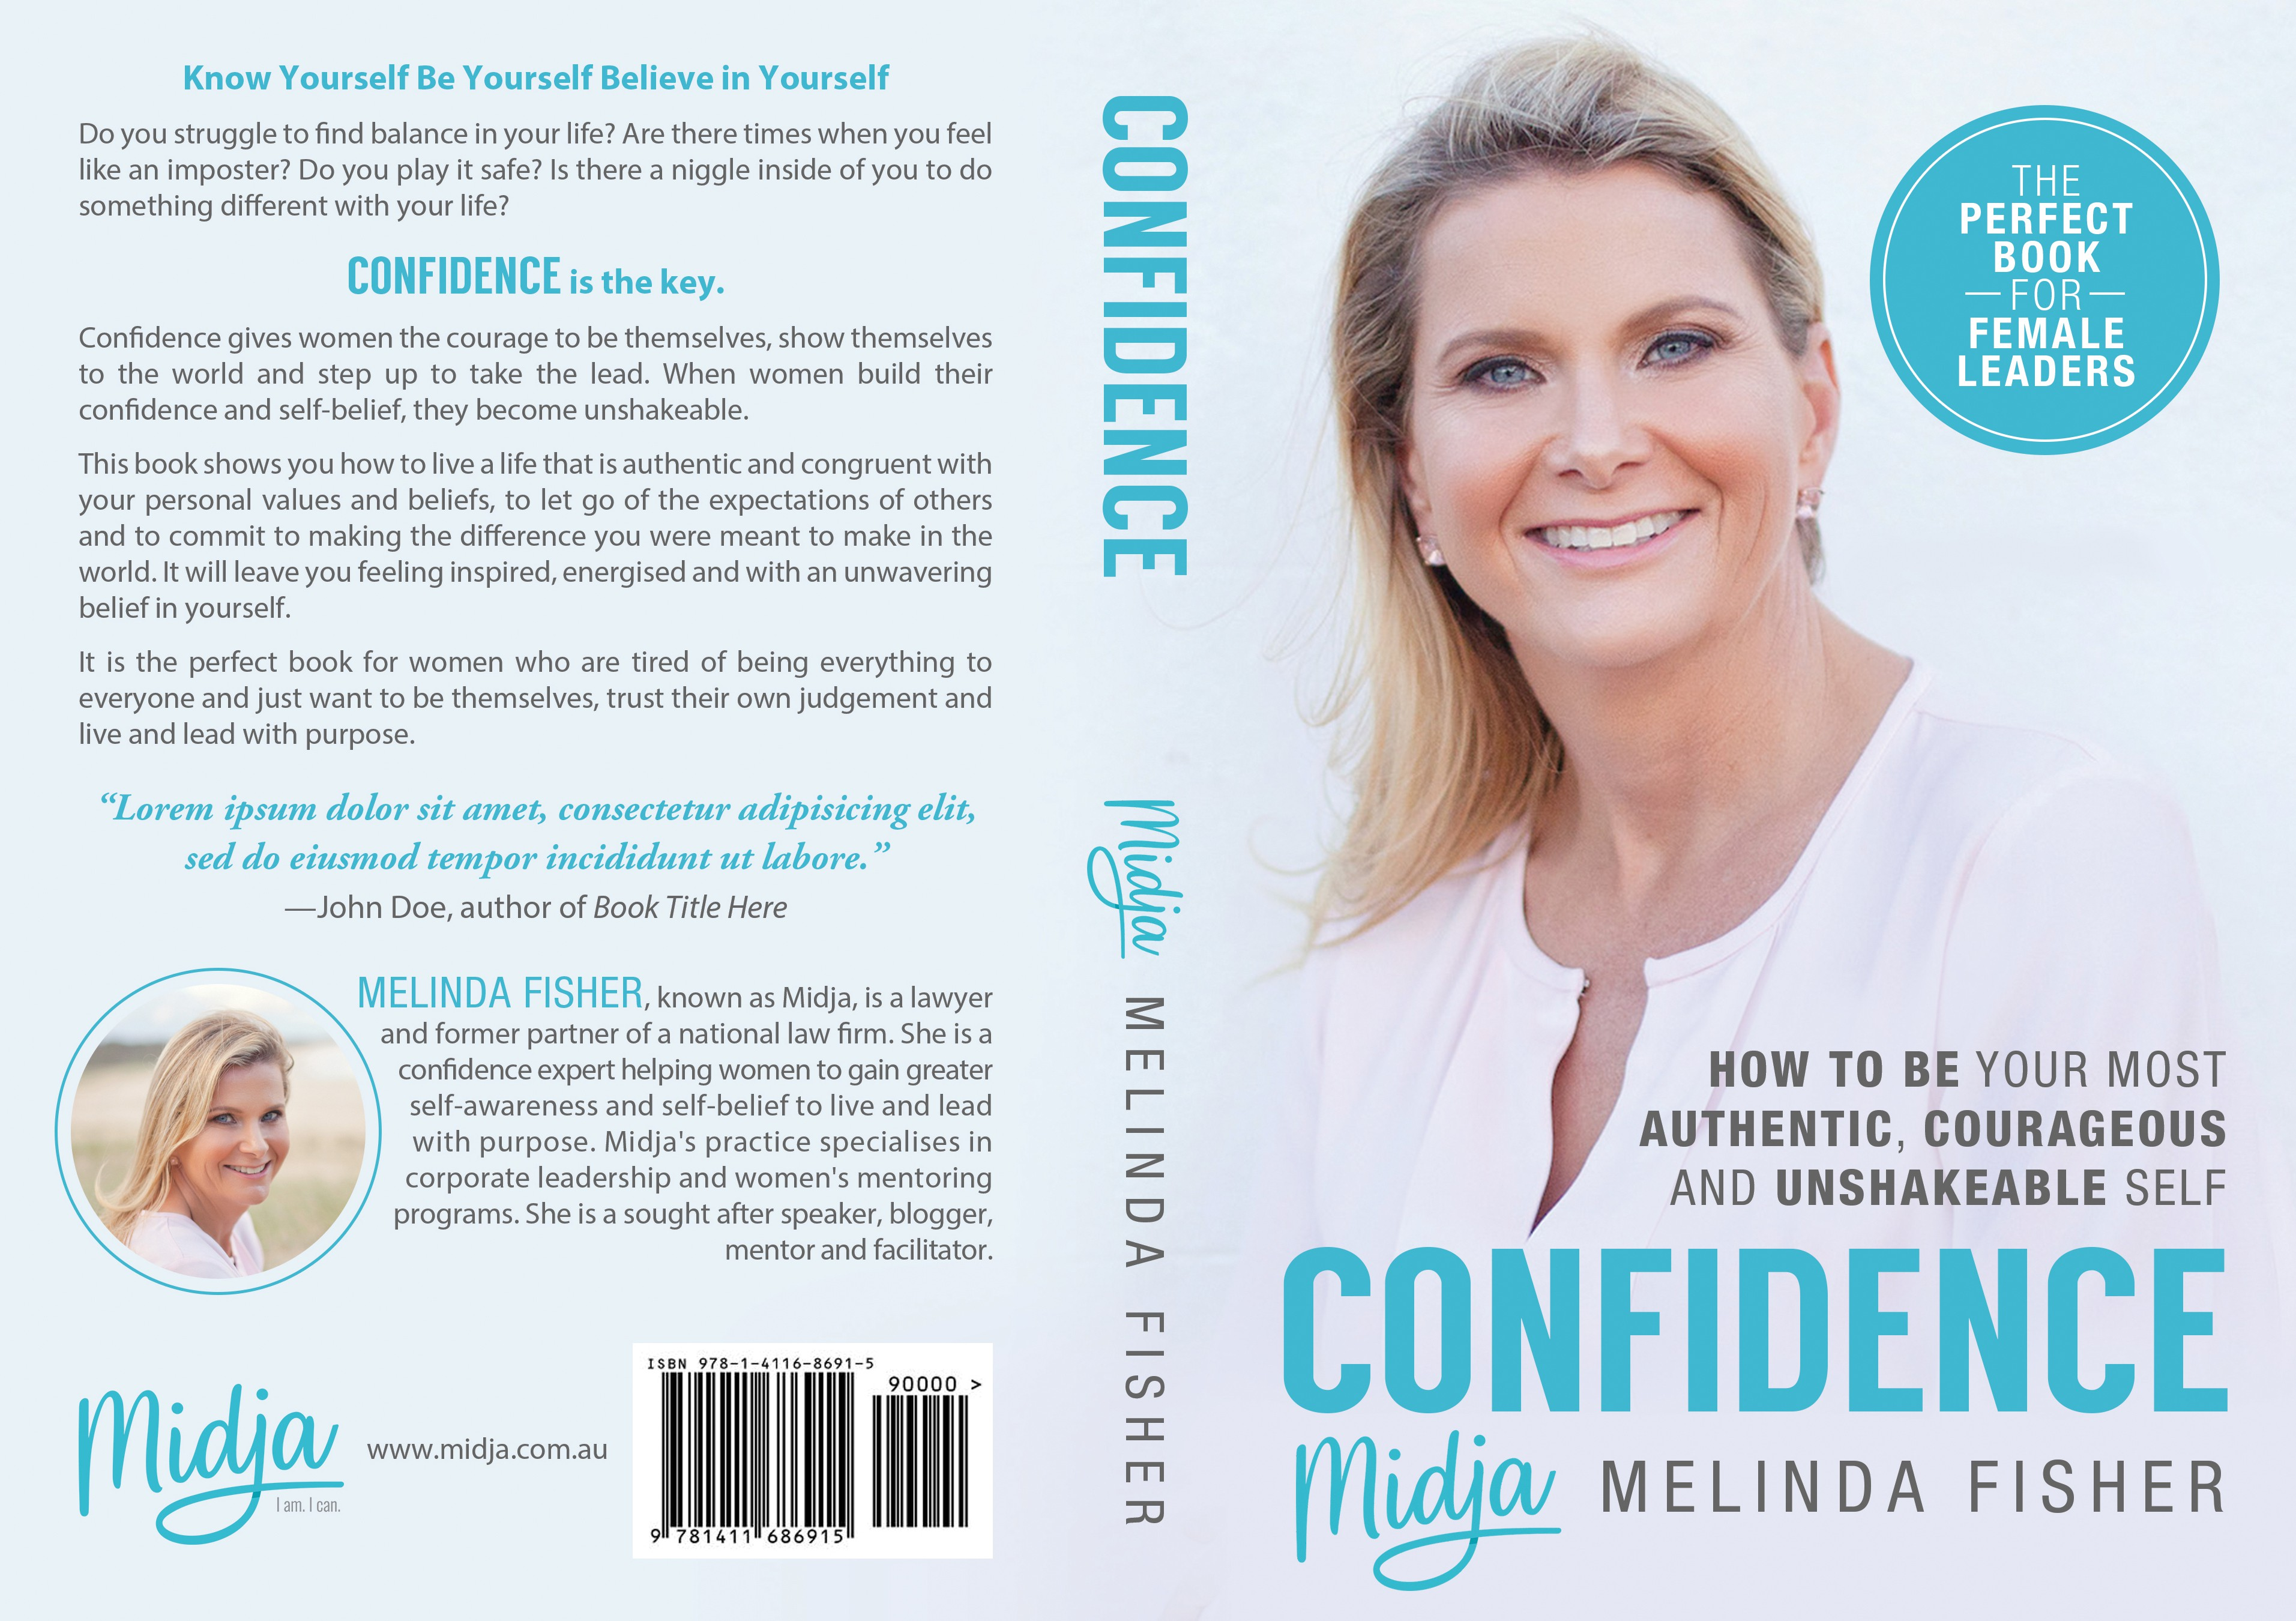 Who is Midja? Design her first book cover